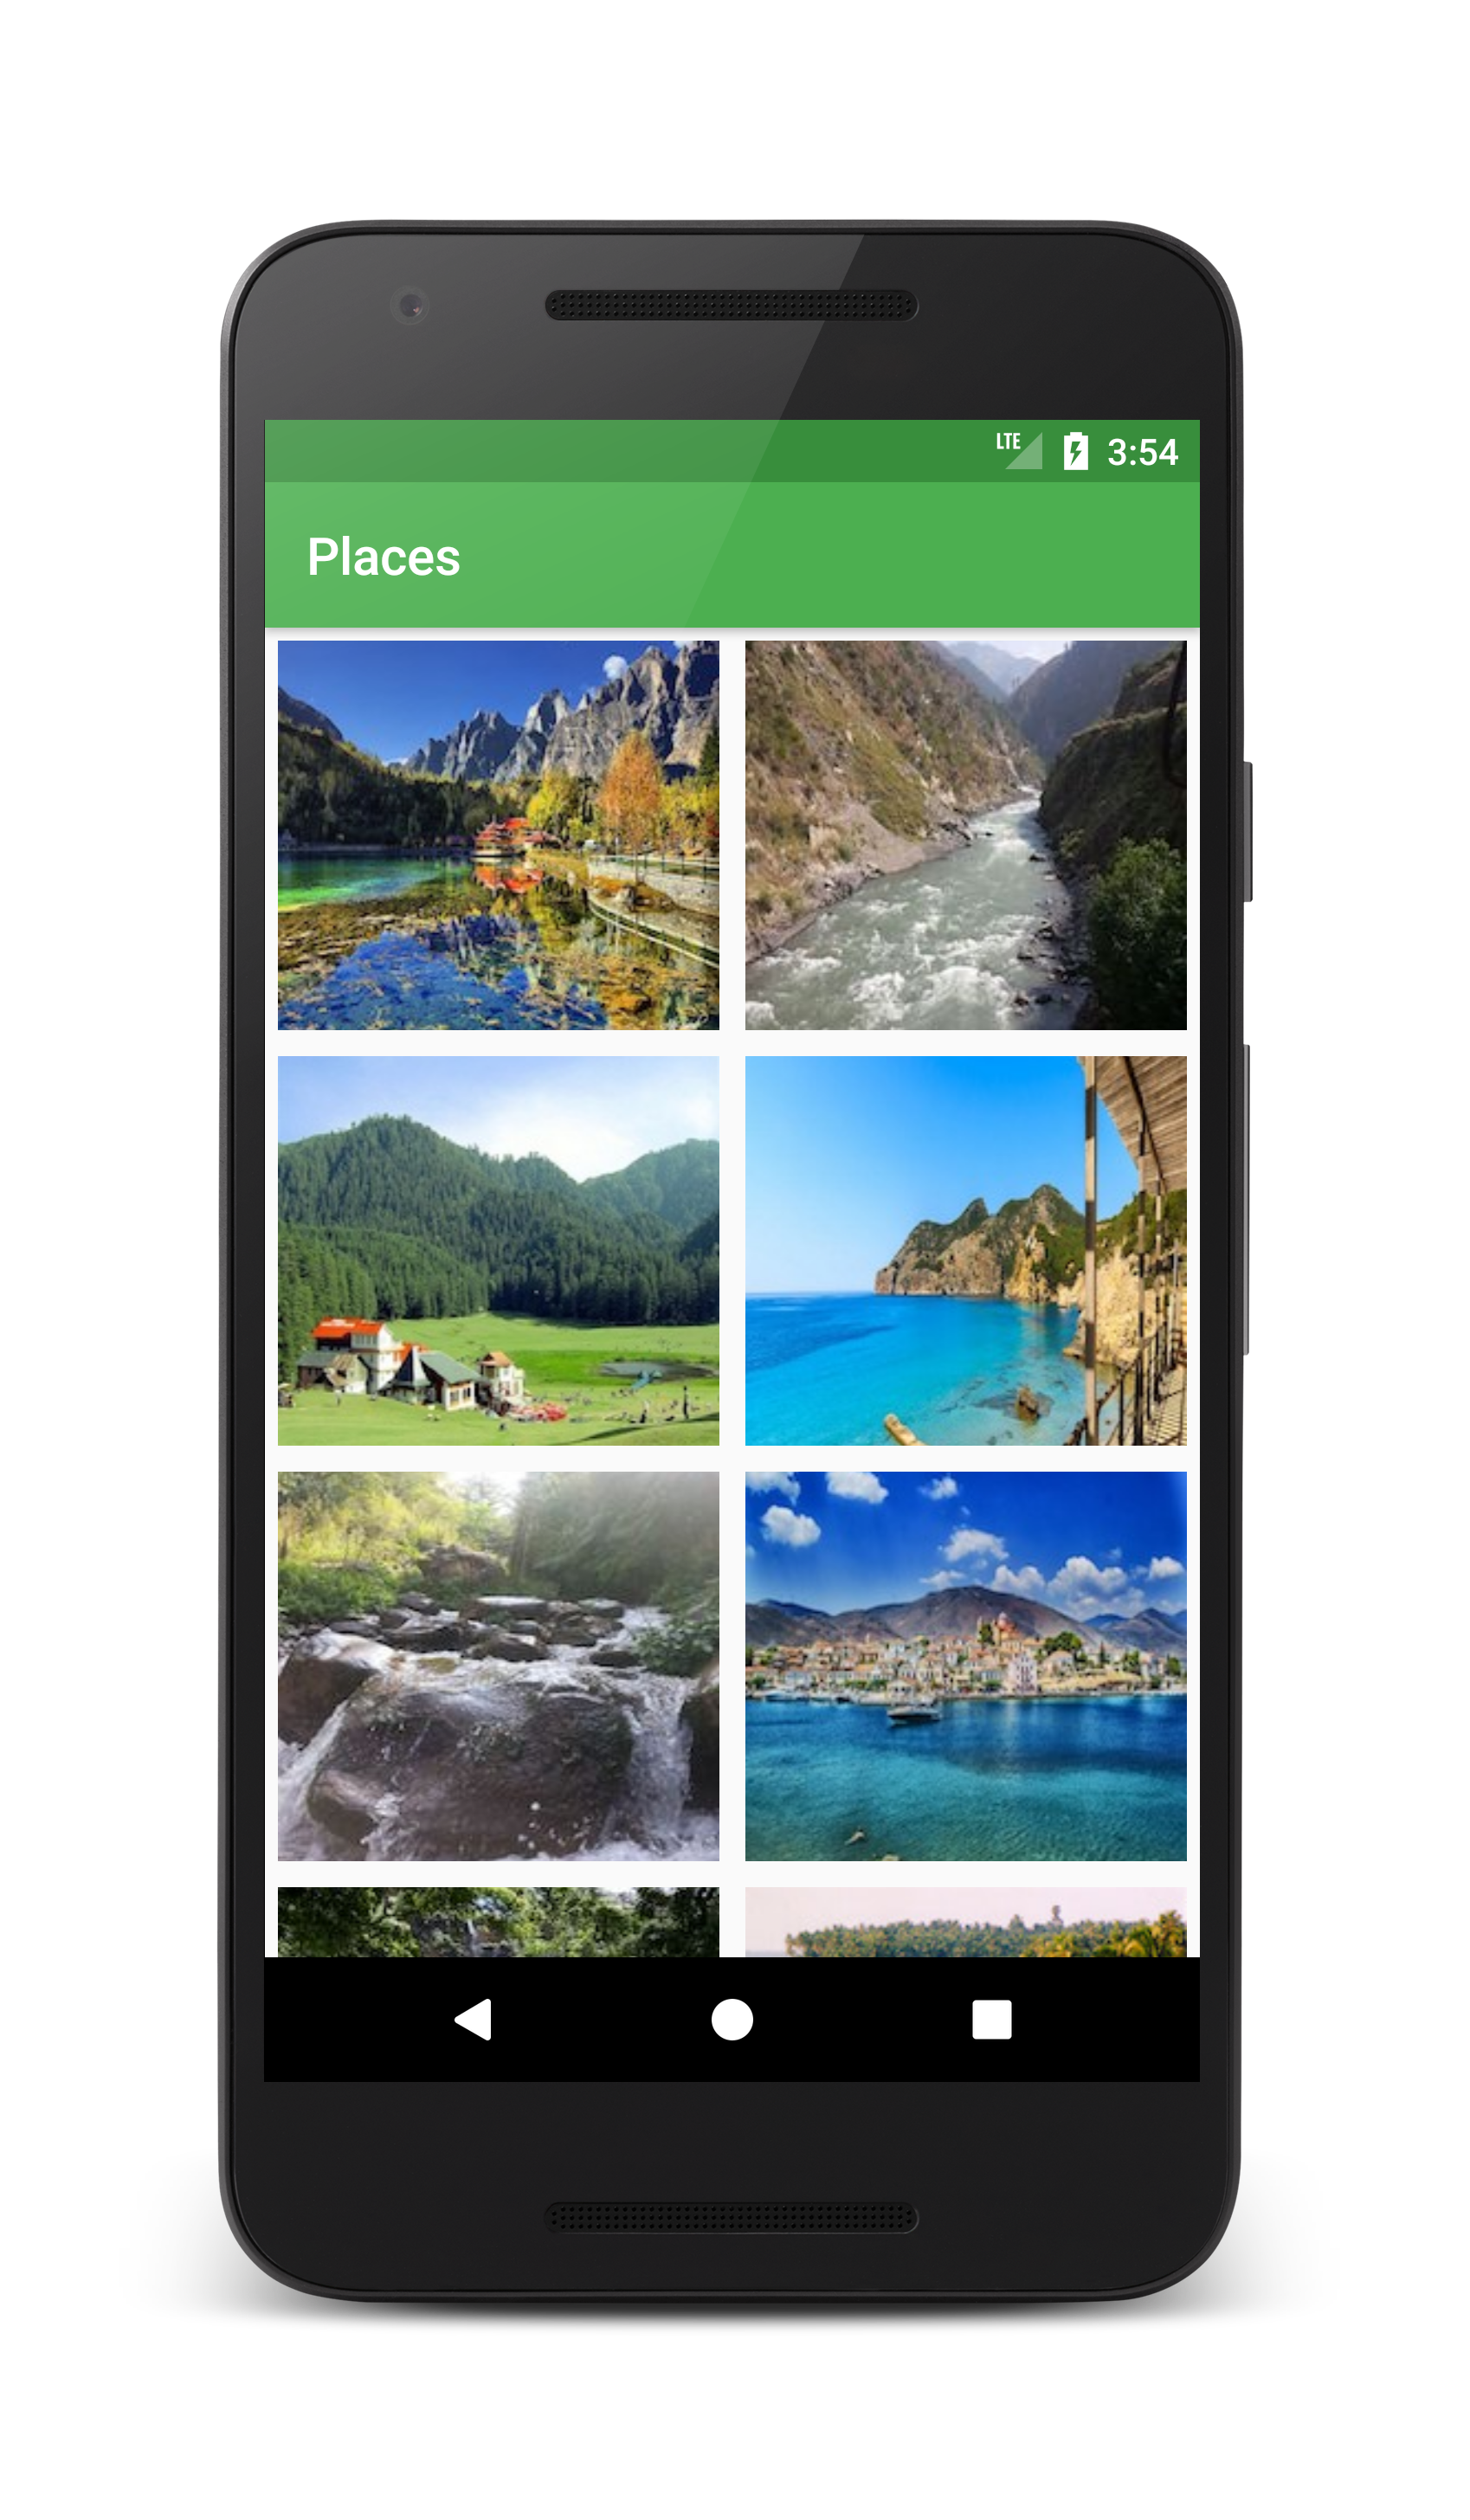 Android Gridlayout Example With Recyclerview - Coding Demos